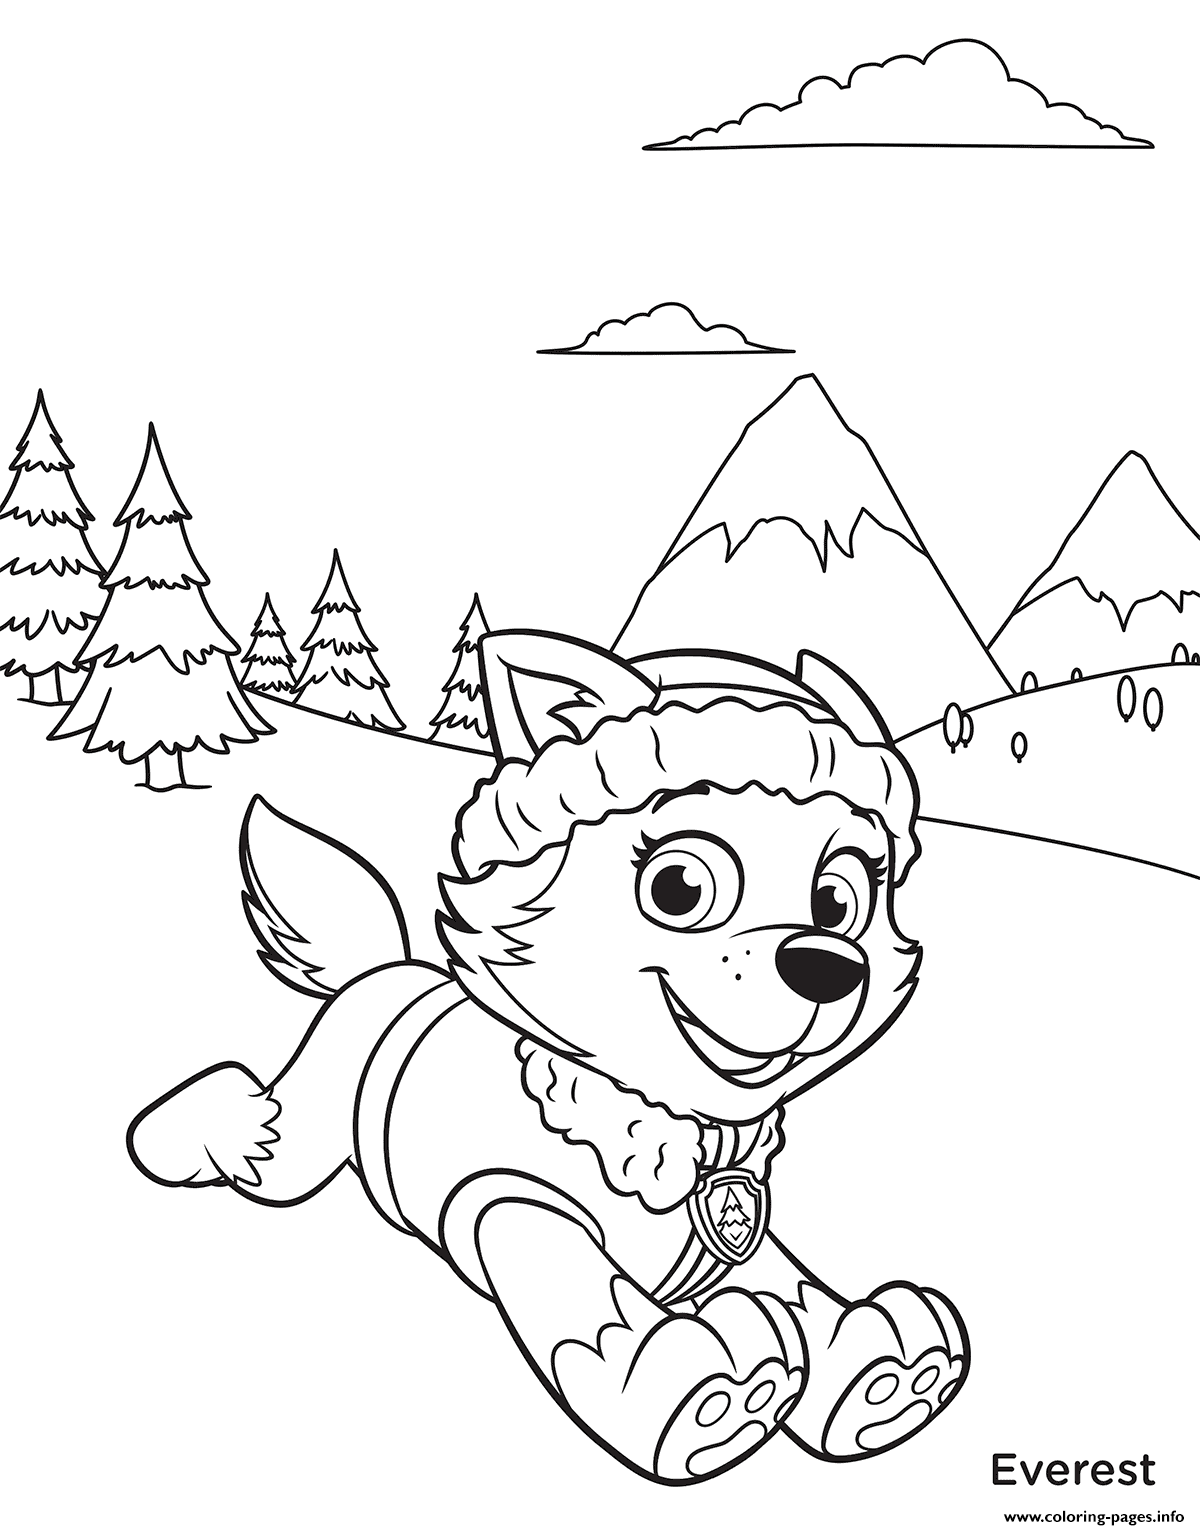 Print Paw Patrol Everest In Mountains Coloring Pages Paw Patrol Coloring Pages Paw Patrol Coloring Halloween Coloring Pages